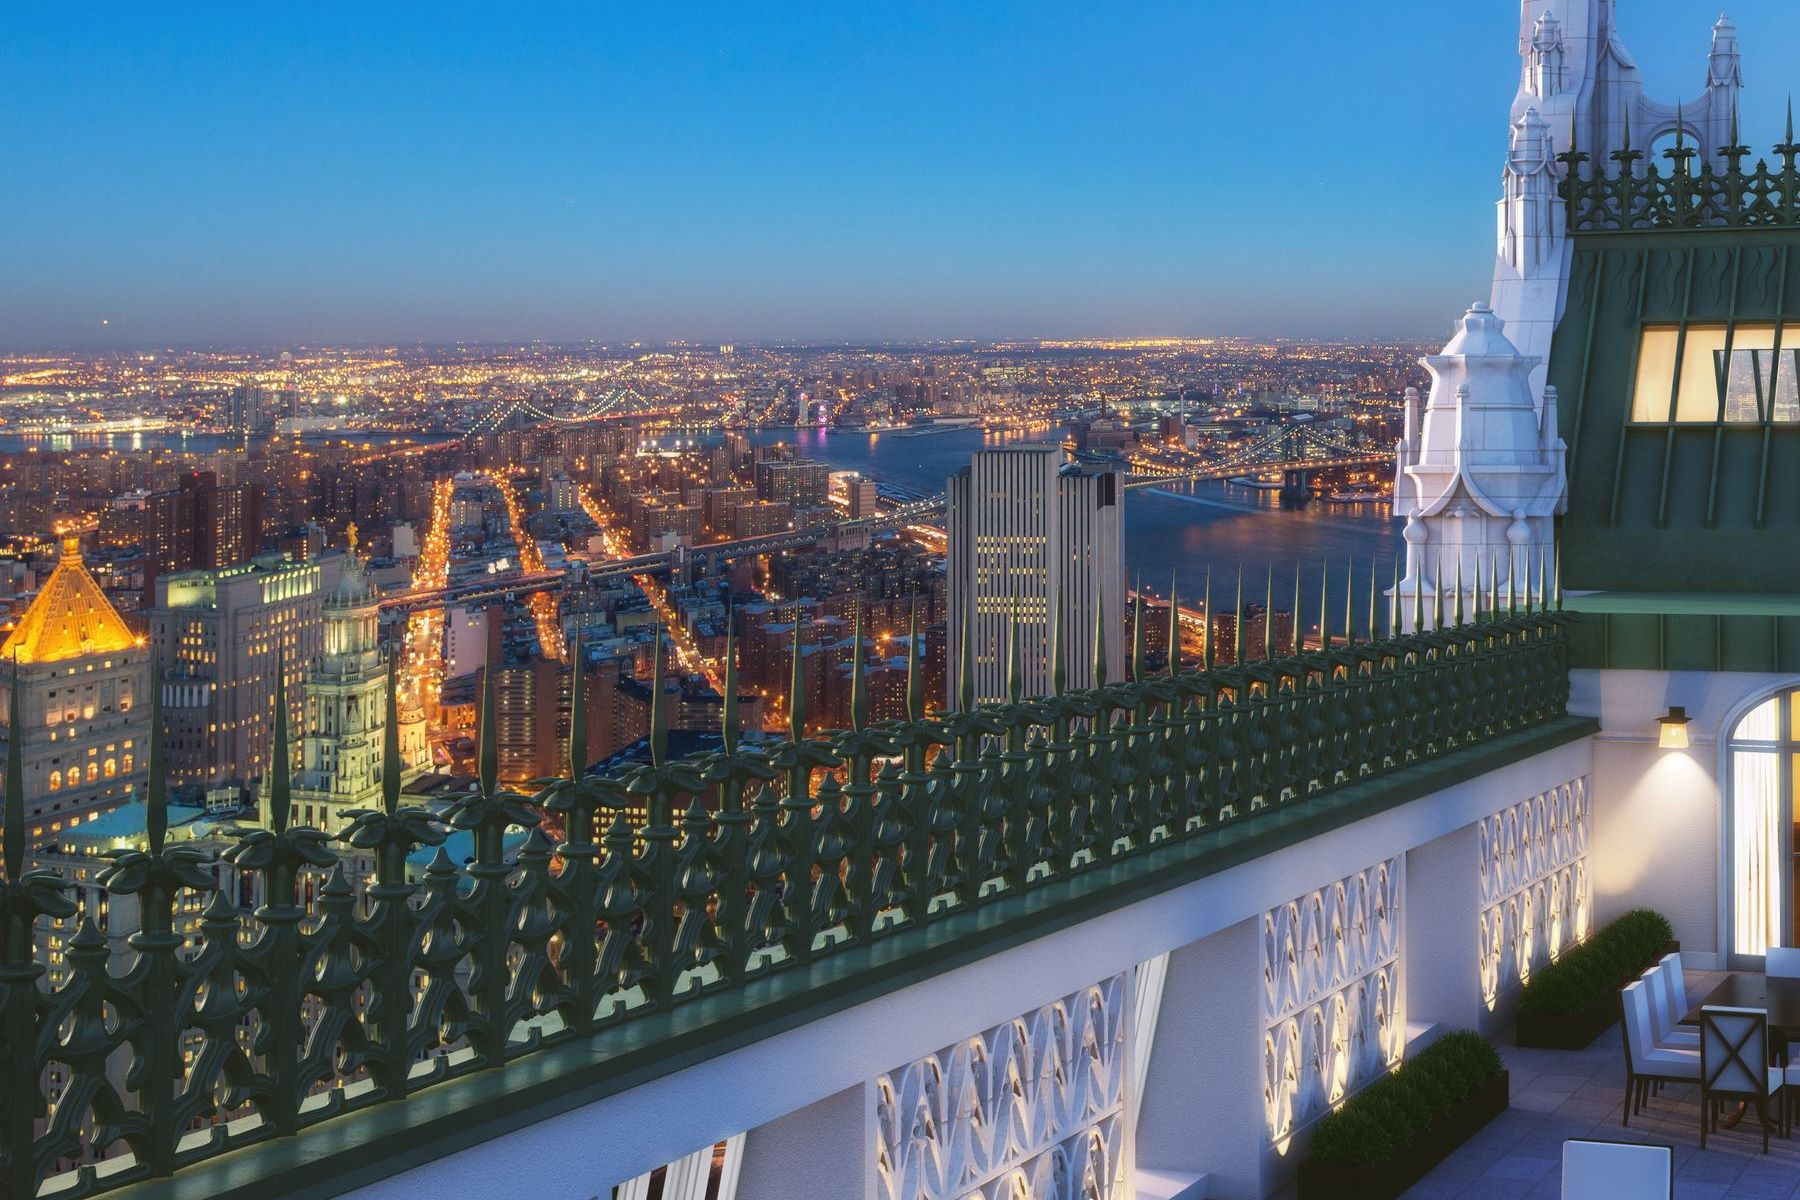 Condominiums для того Продажа на Woolworth Tower Residences - Pavilion A 2 Park Place Apt Pavilion A, New York, Нью-Йорк 10007 Соединенные Штаты